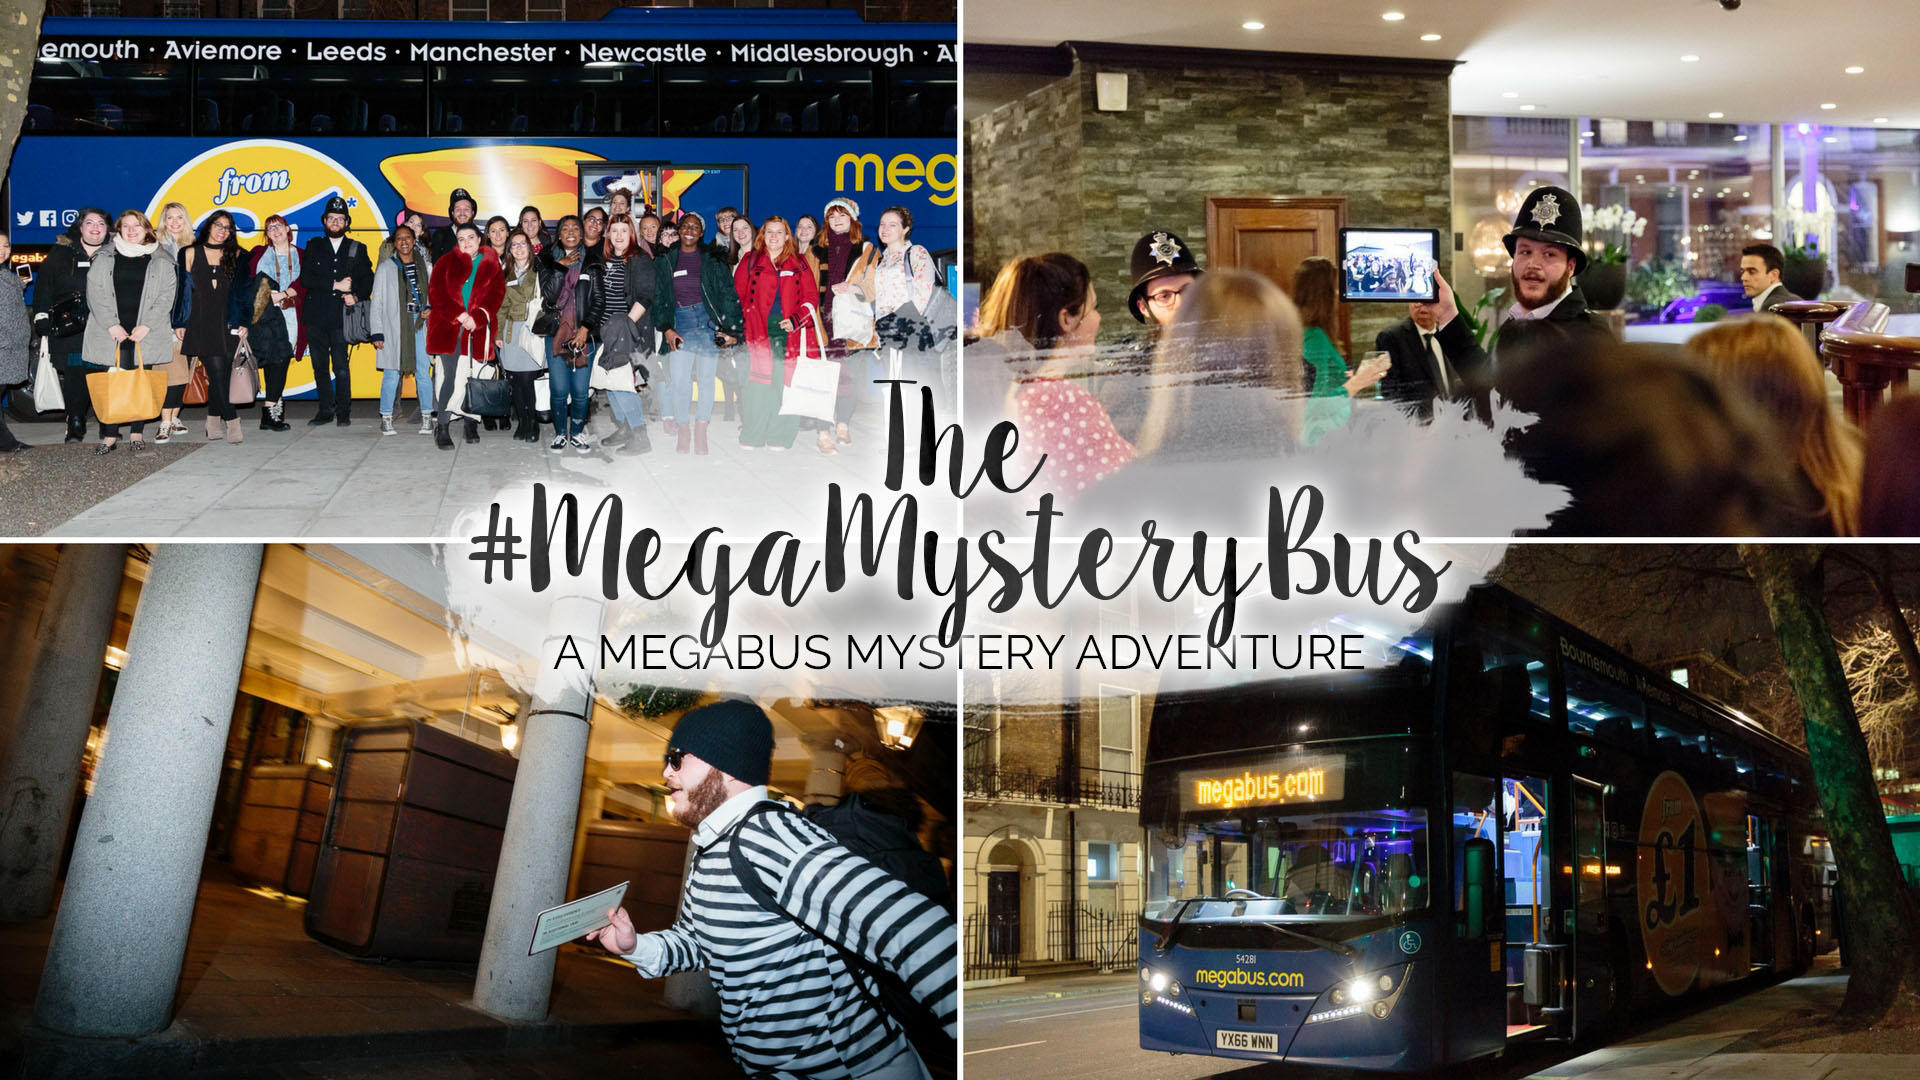 #MegaMysteryBus - A Megabus Mystery Adventure || London